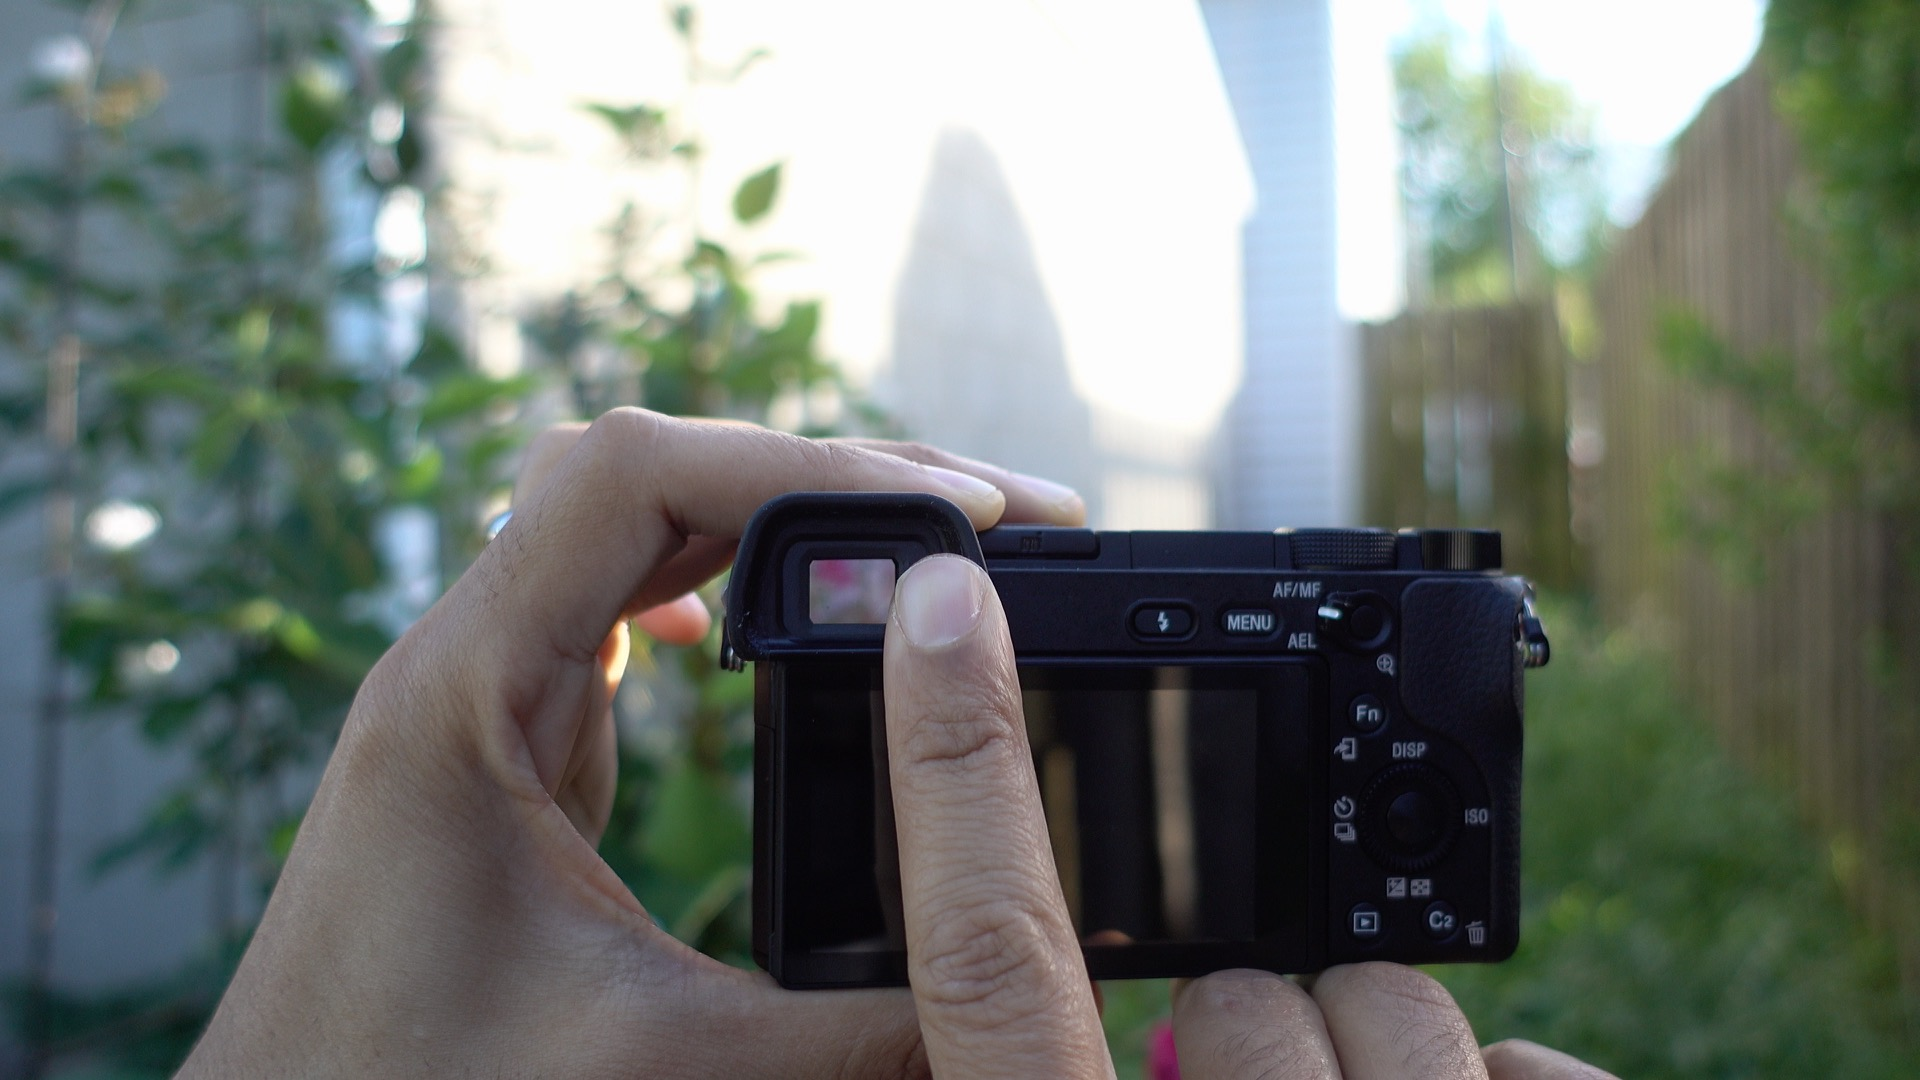 Hands-on: Sony's a6300 mirrorless camera makes a great 4K